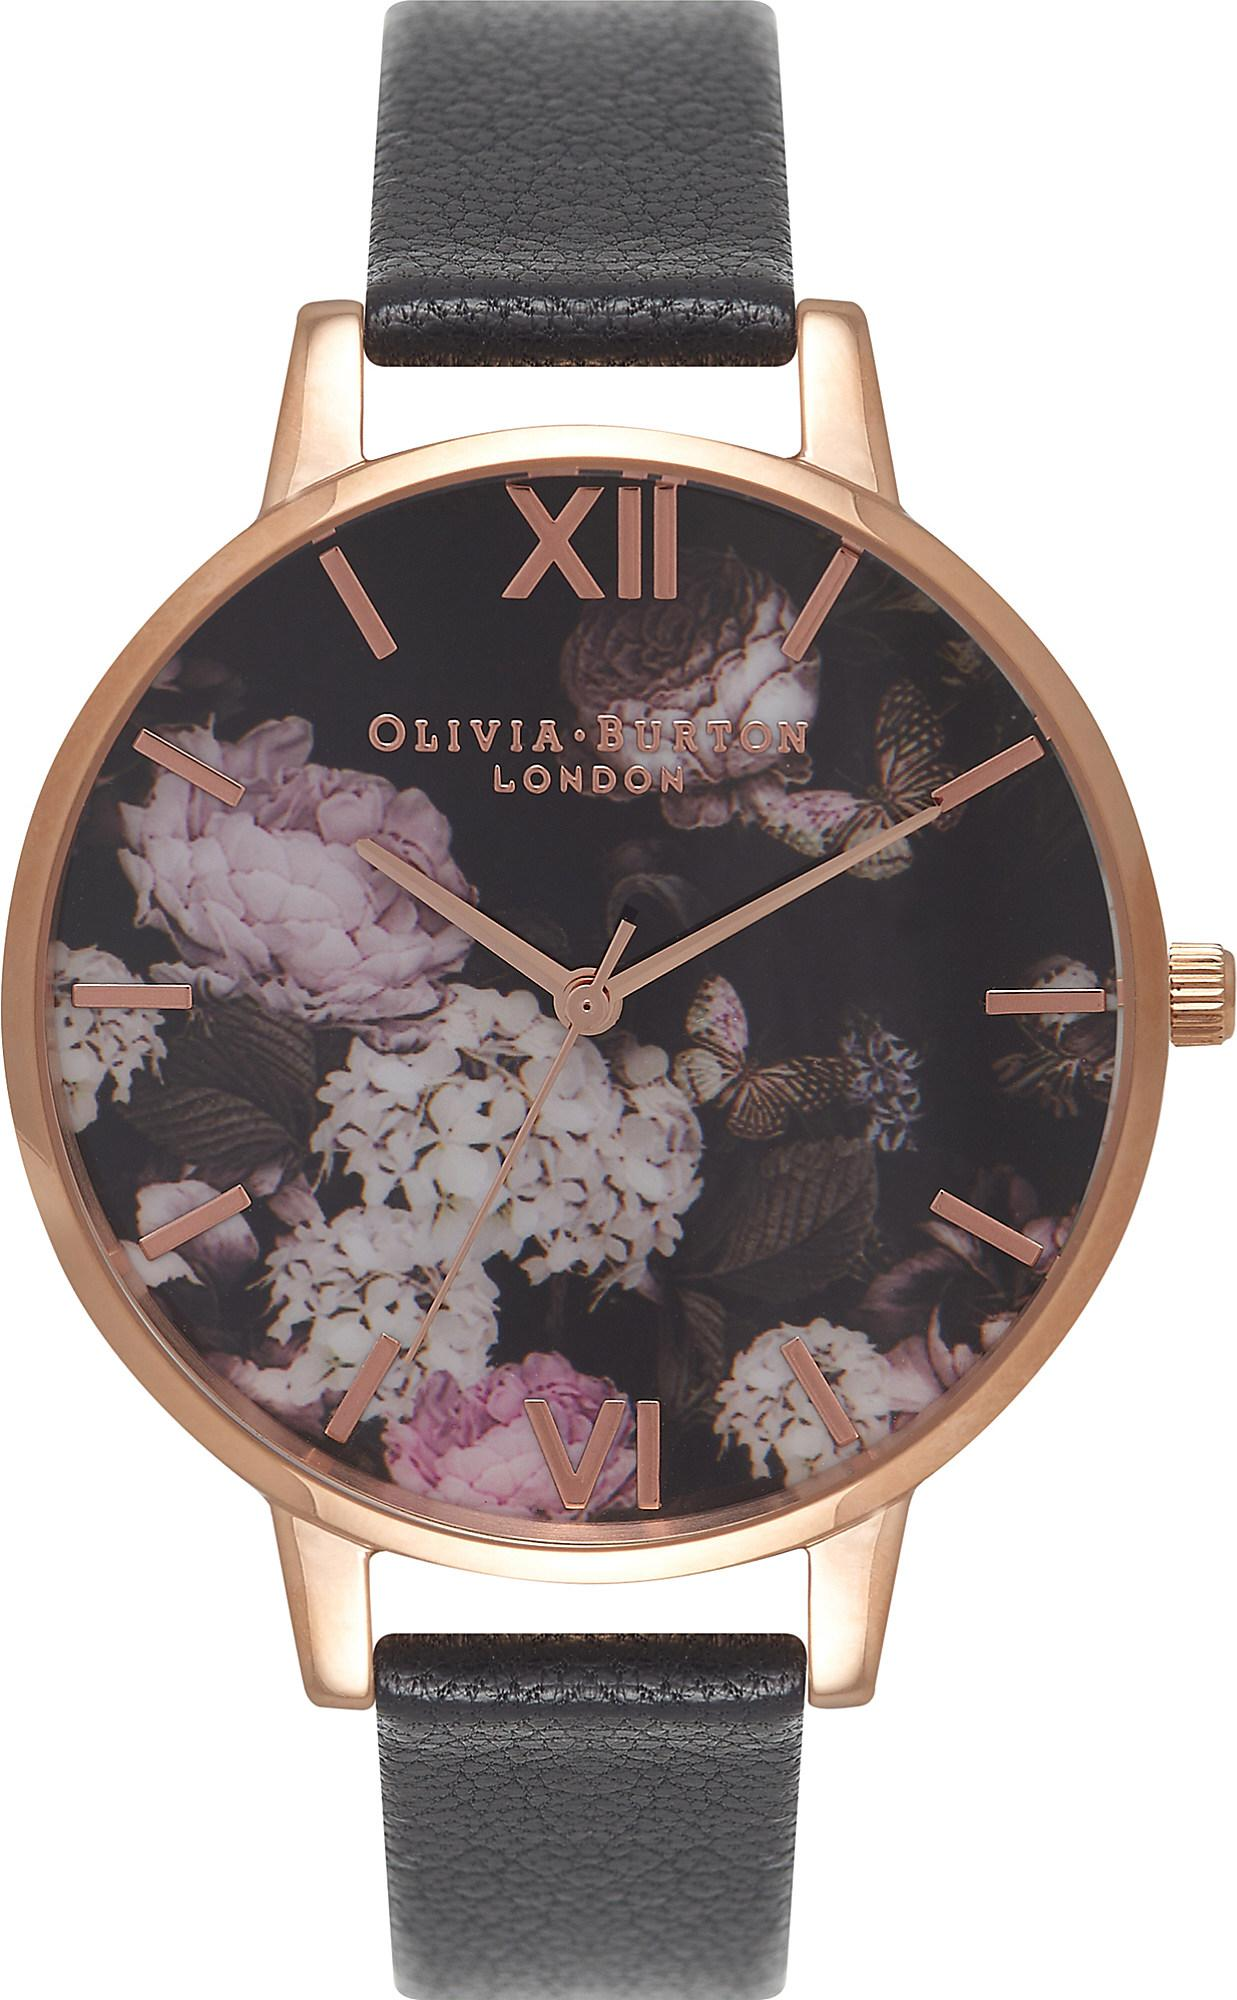 olivia burton ob15wg12 winter garden rose gold and leather watch